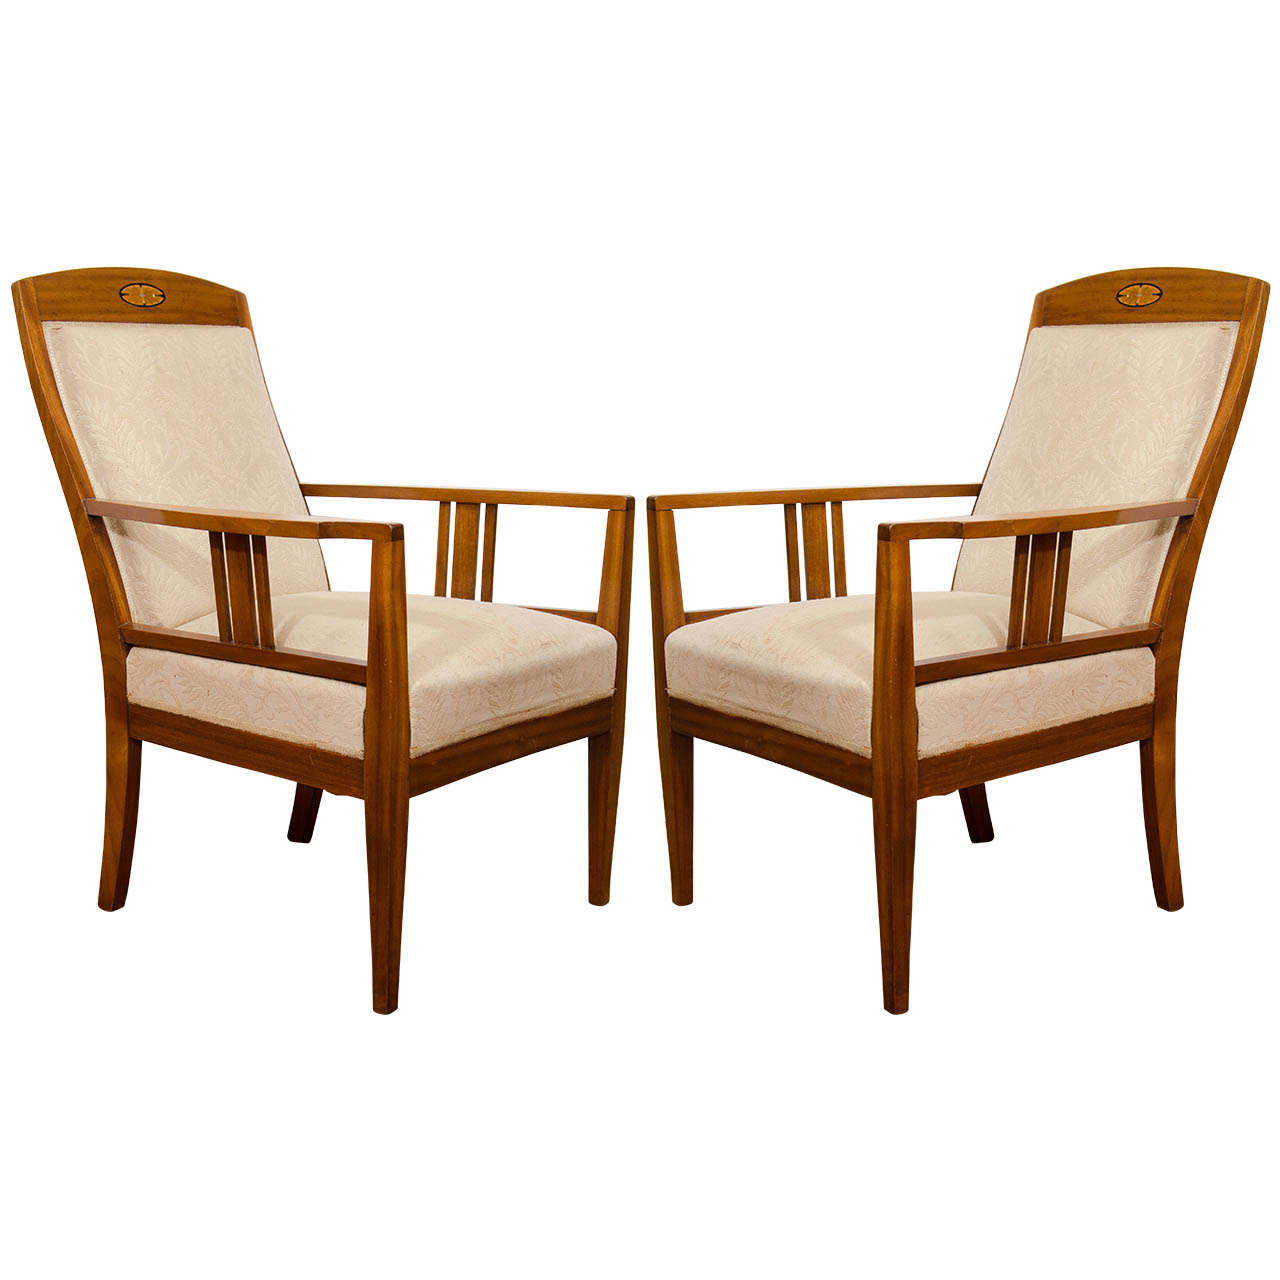 Jugendstil Mahogany Salon Chairs With Ebony Birch And Mother Of Pearl Inlay For Sale At 1stdibs